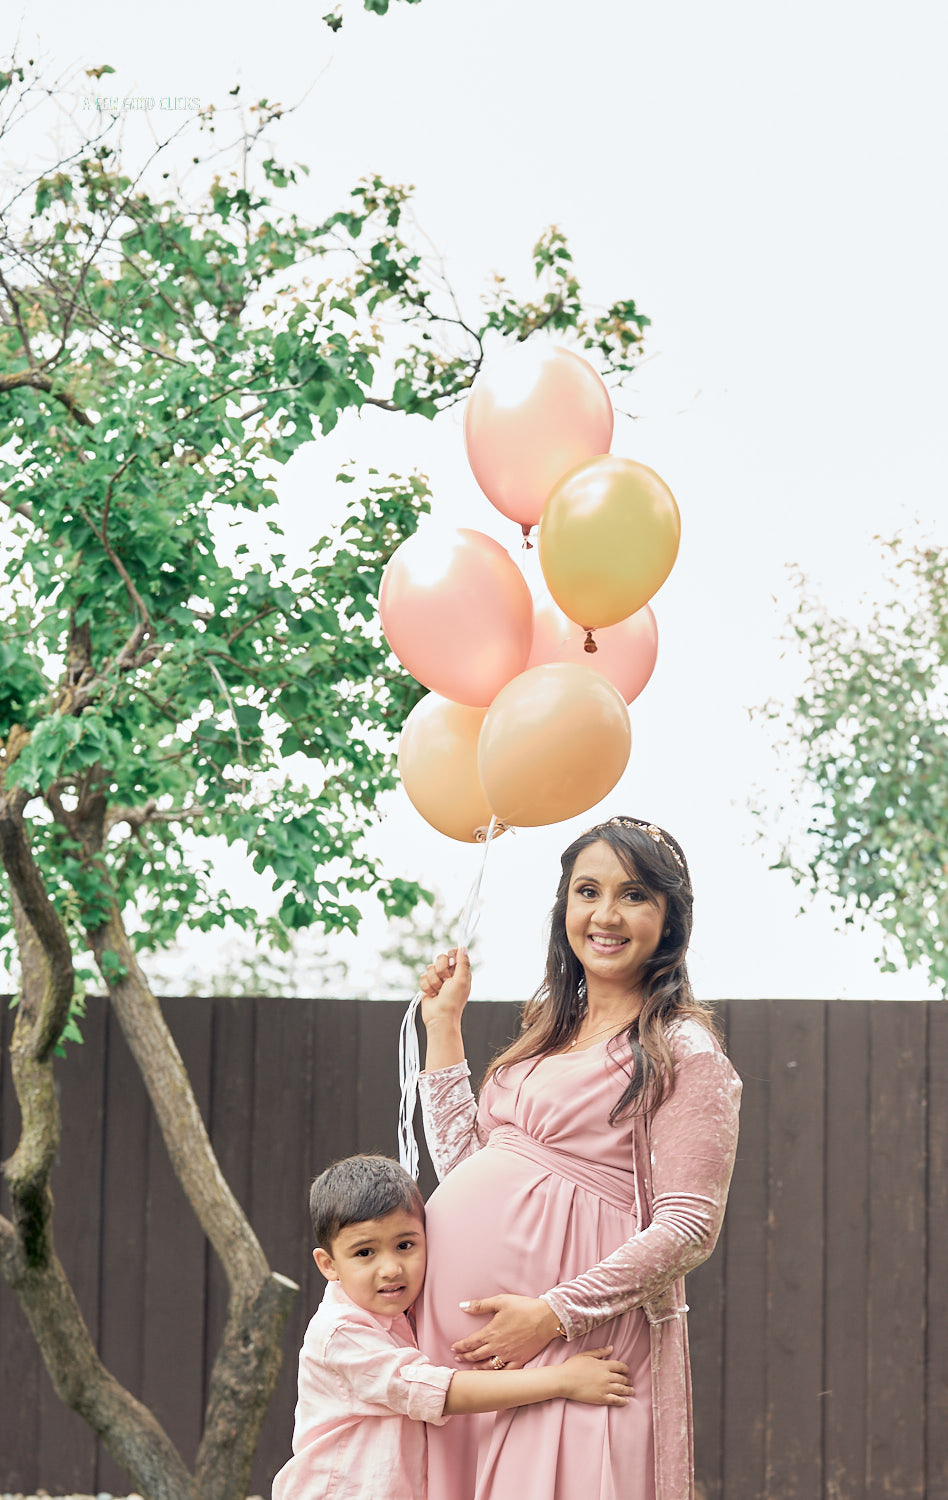 maternity-photography-with-your-first-born-and-balloons-afewgoodclicks